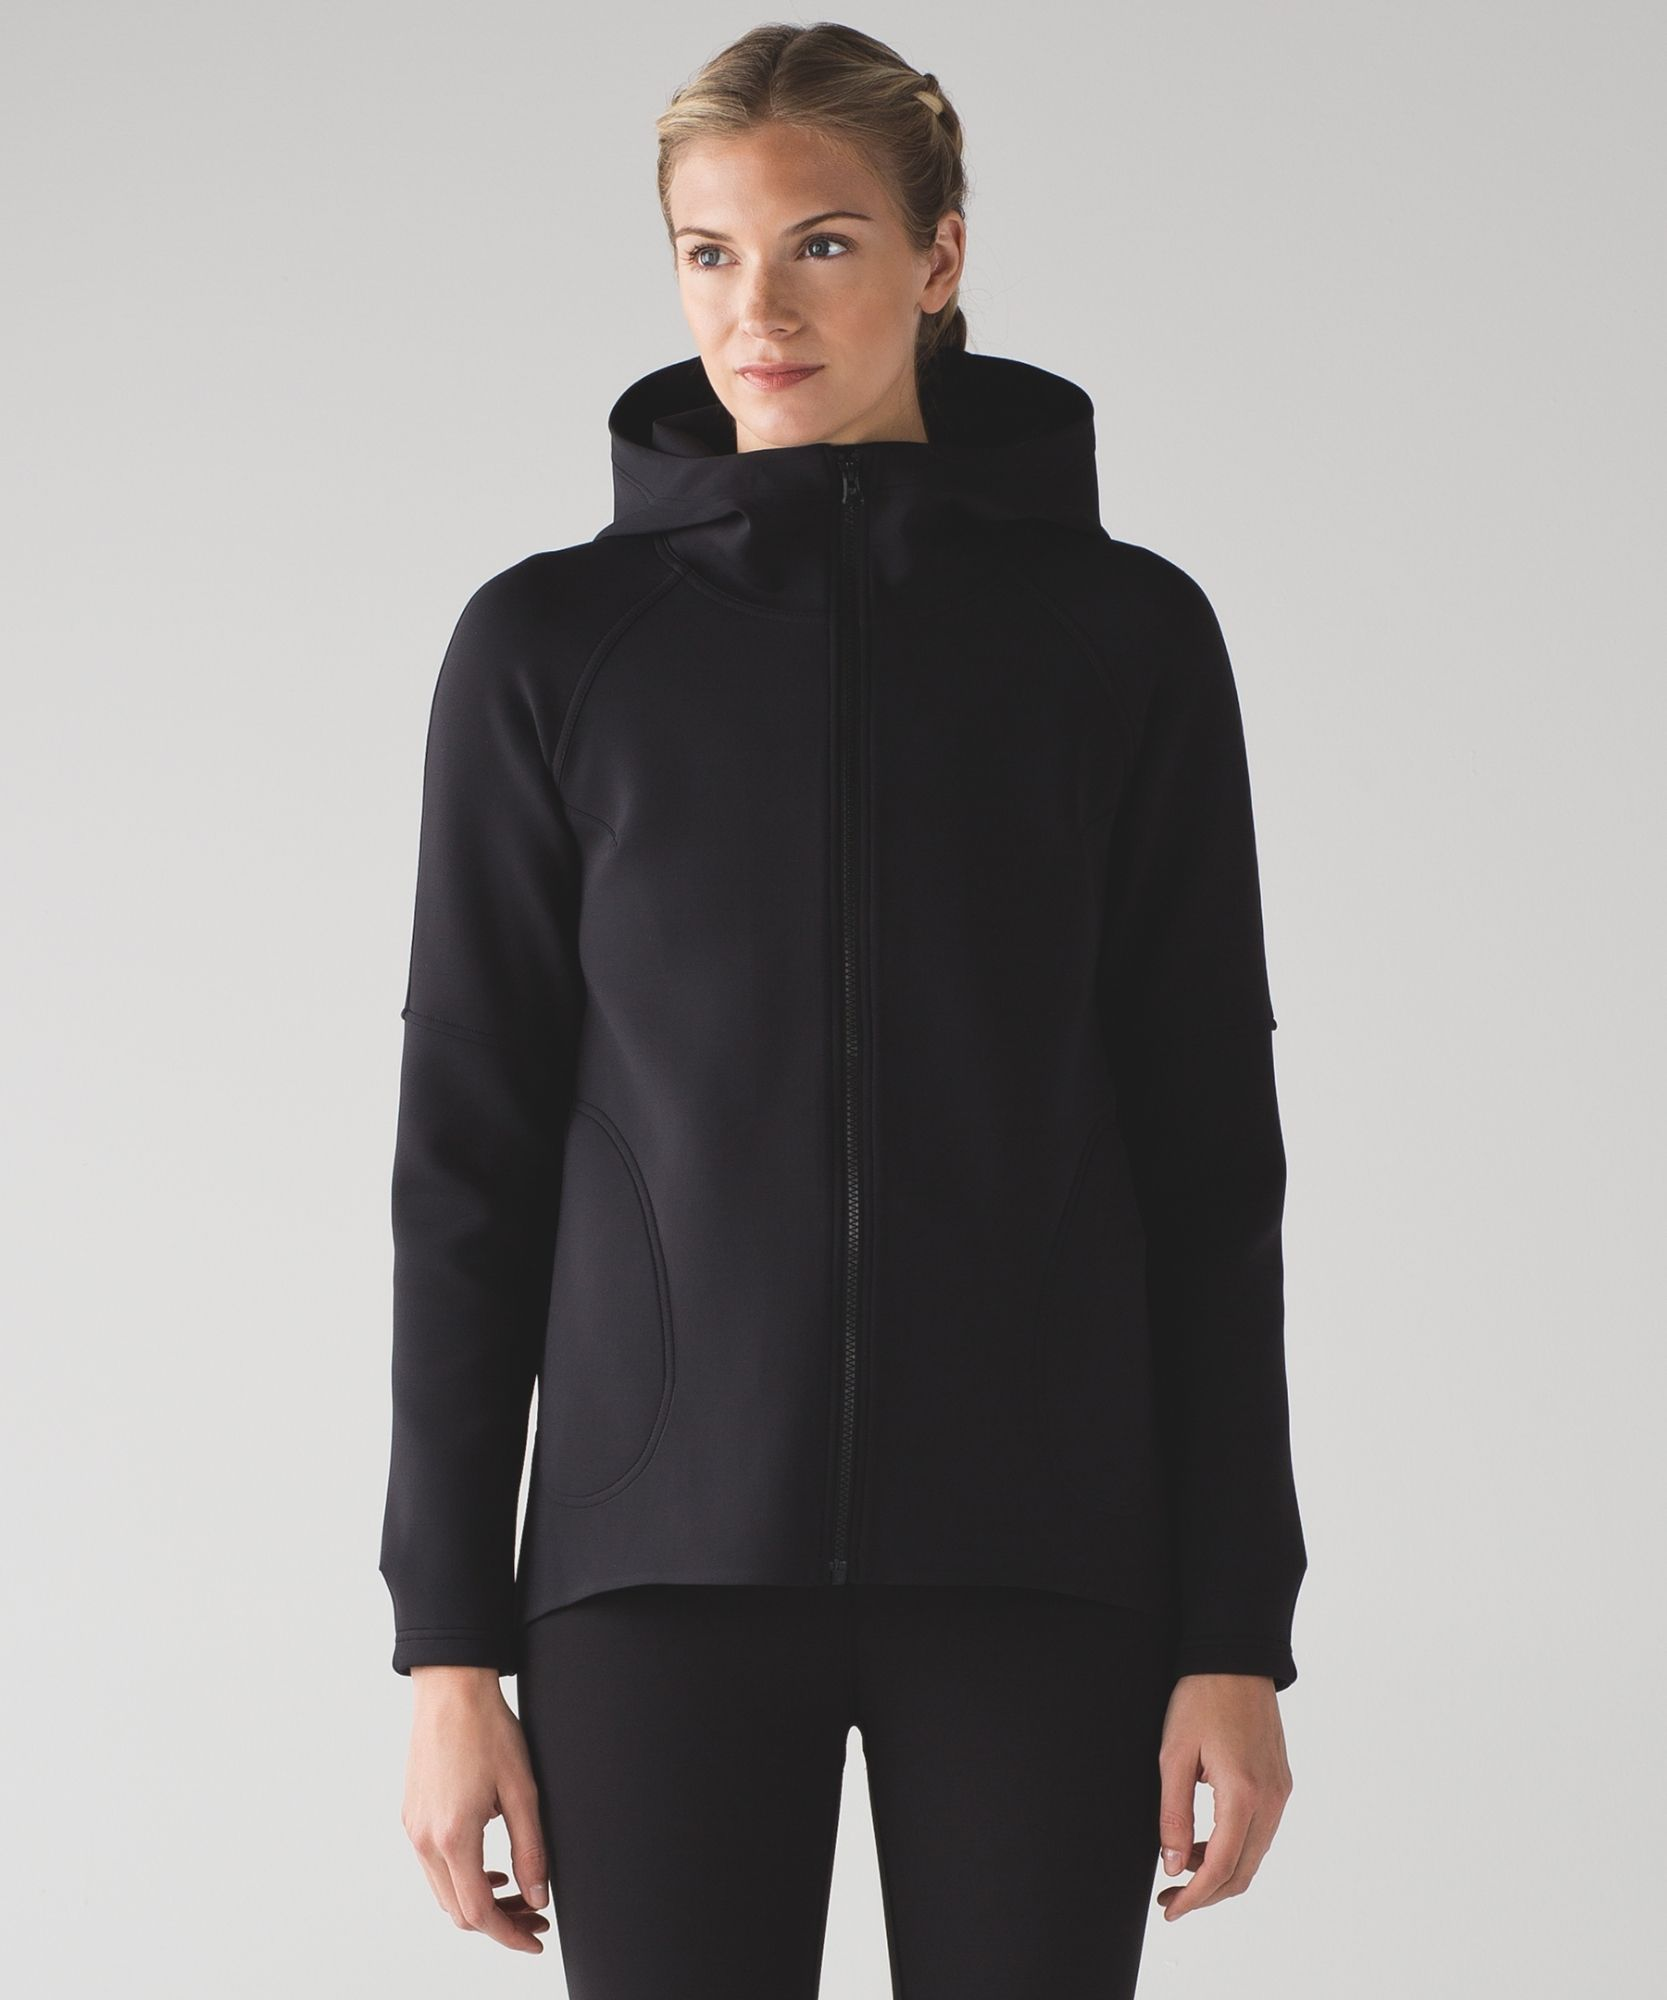 1059b762d49a2 Spacer fabric is the future of post-sweat layering. The double ...